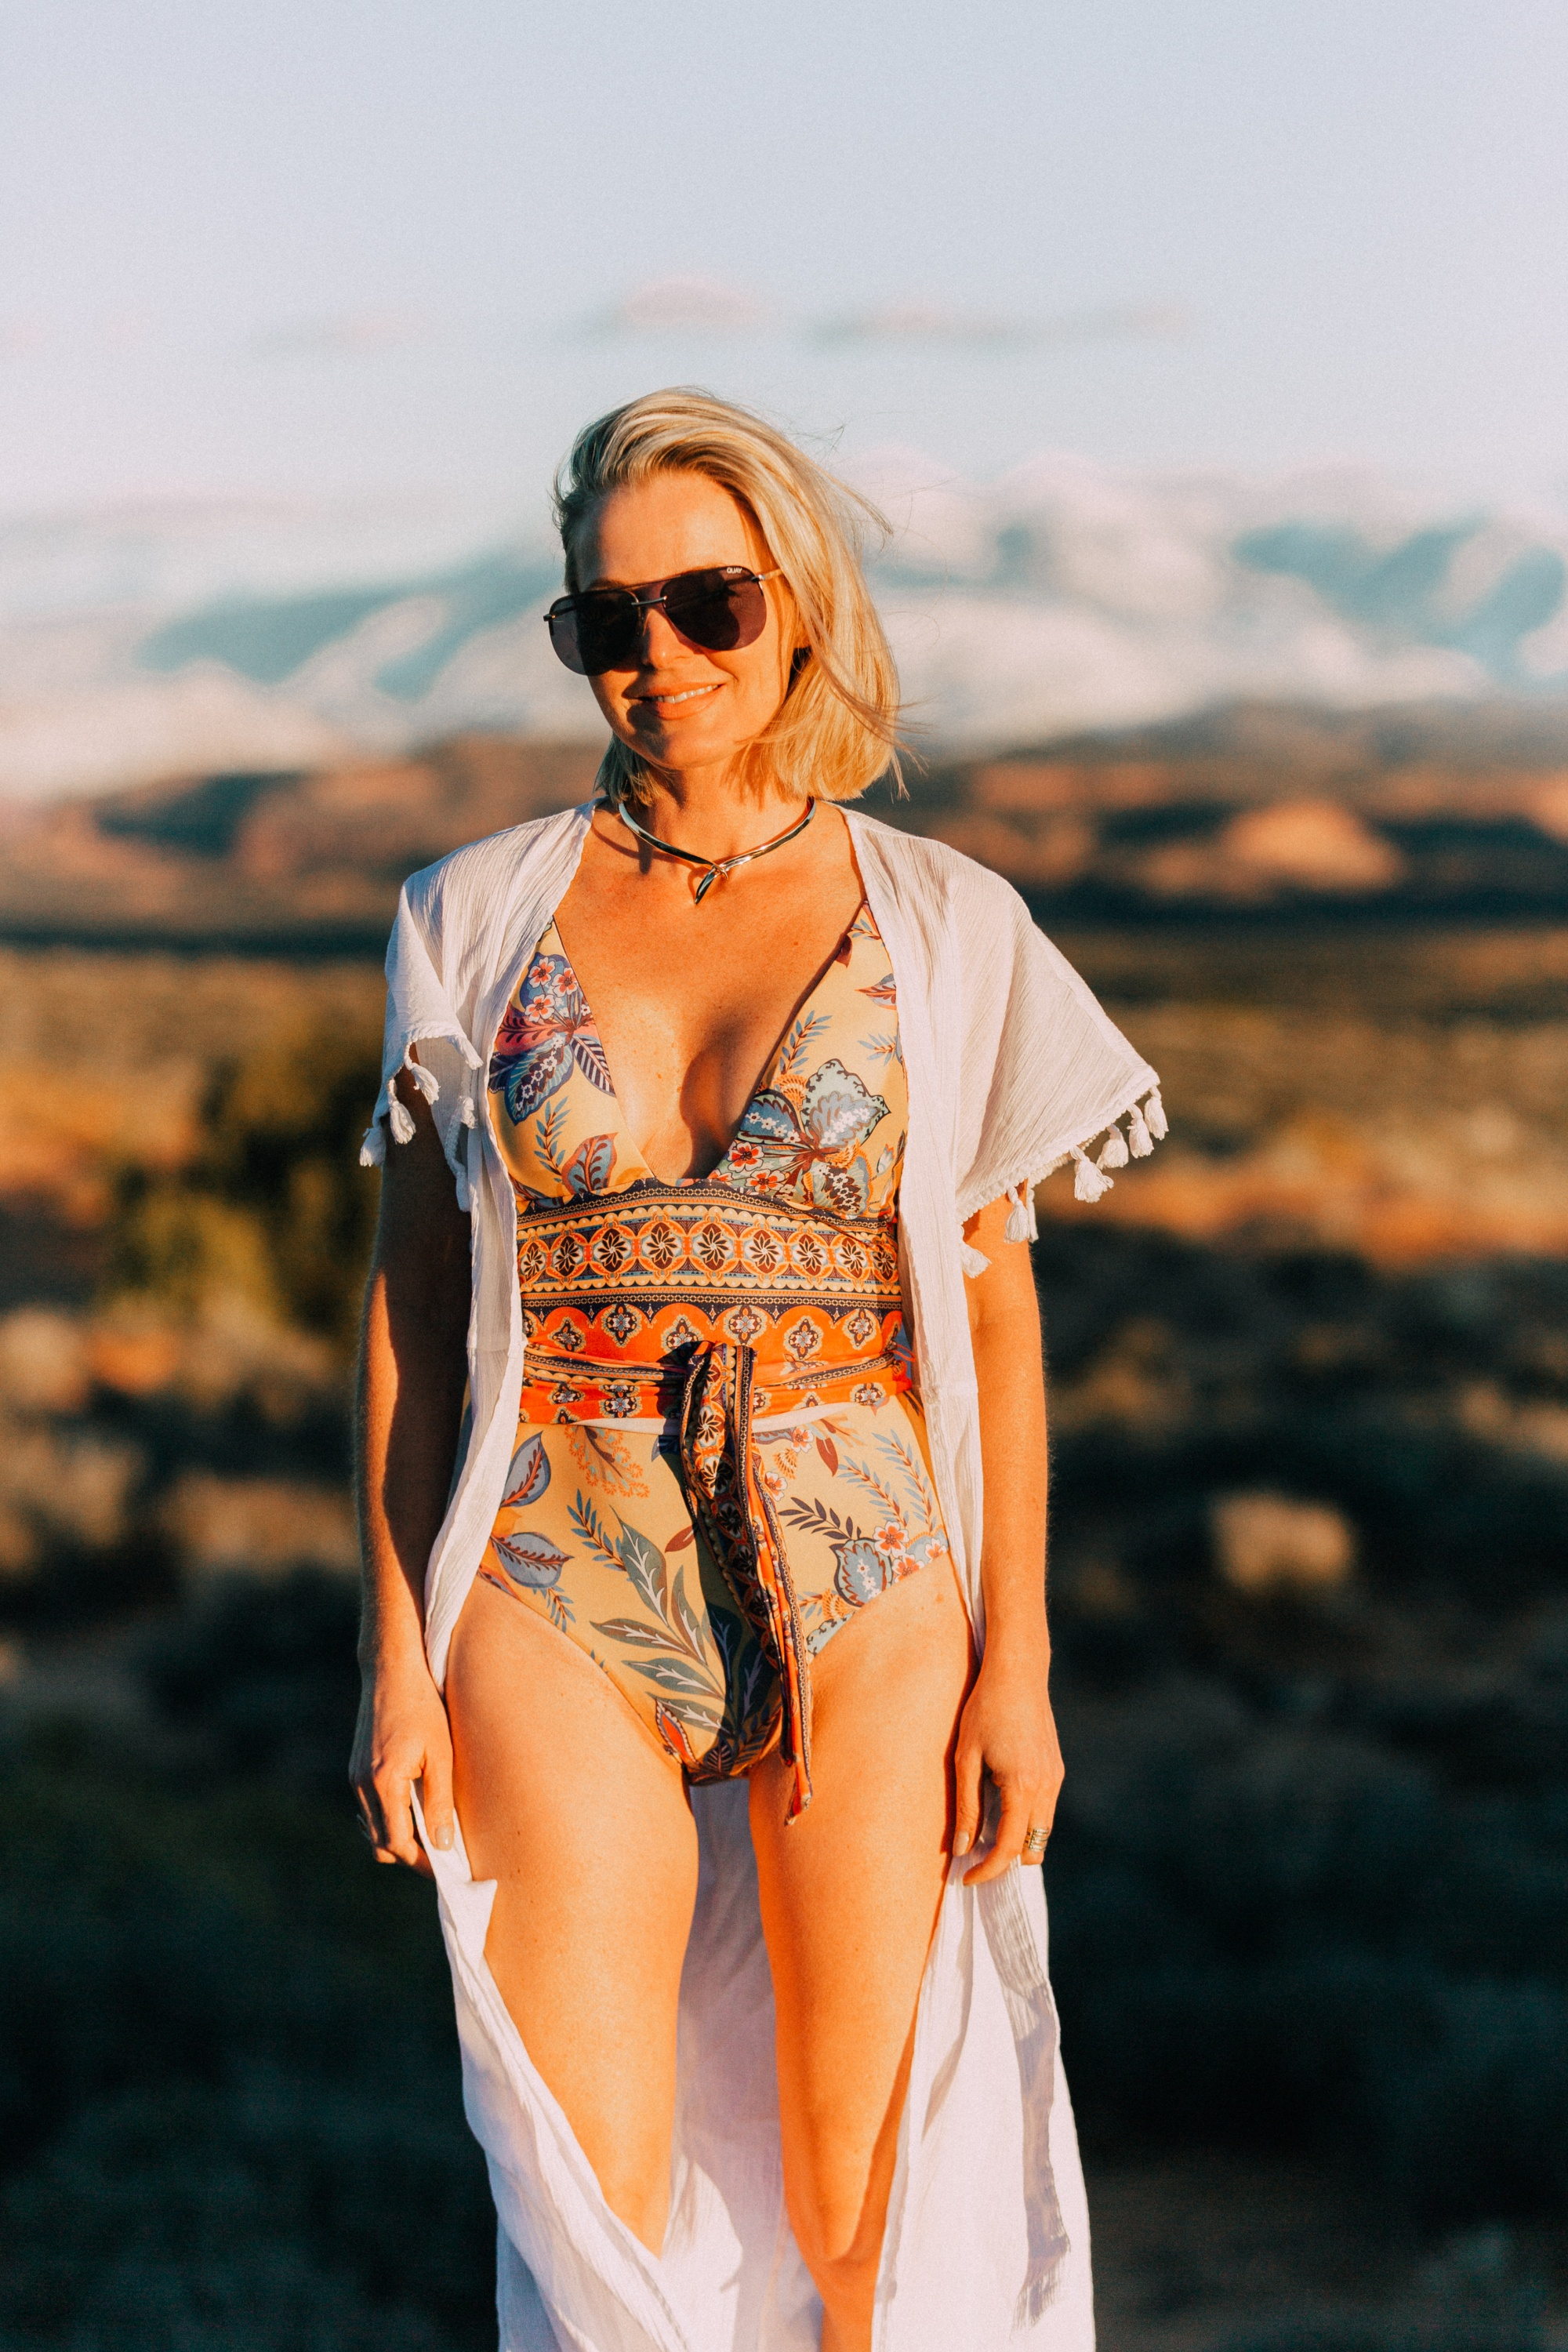 Full Coverage one piece paisley swimsuit by becca for women over 40 years old with Eddie Bargo choker necklace, and a white tassel kimono from Asos in Moab, Utah